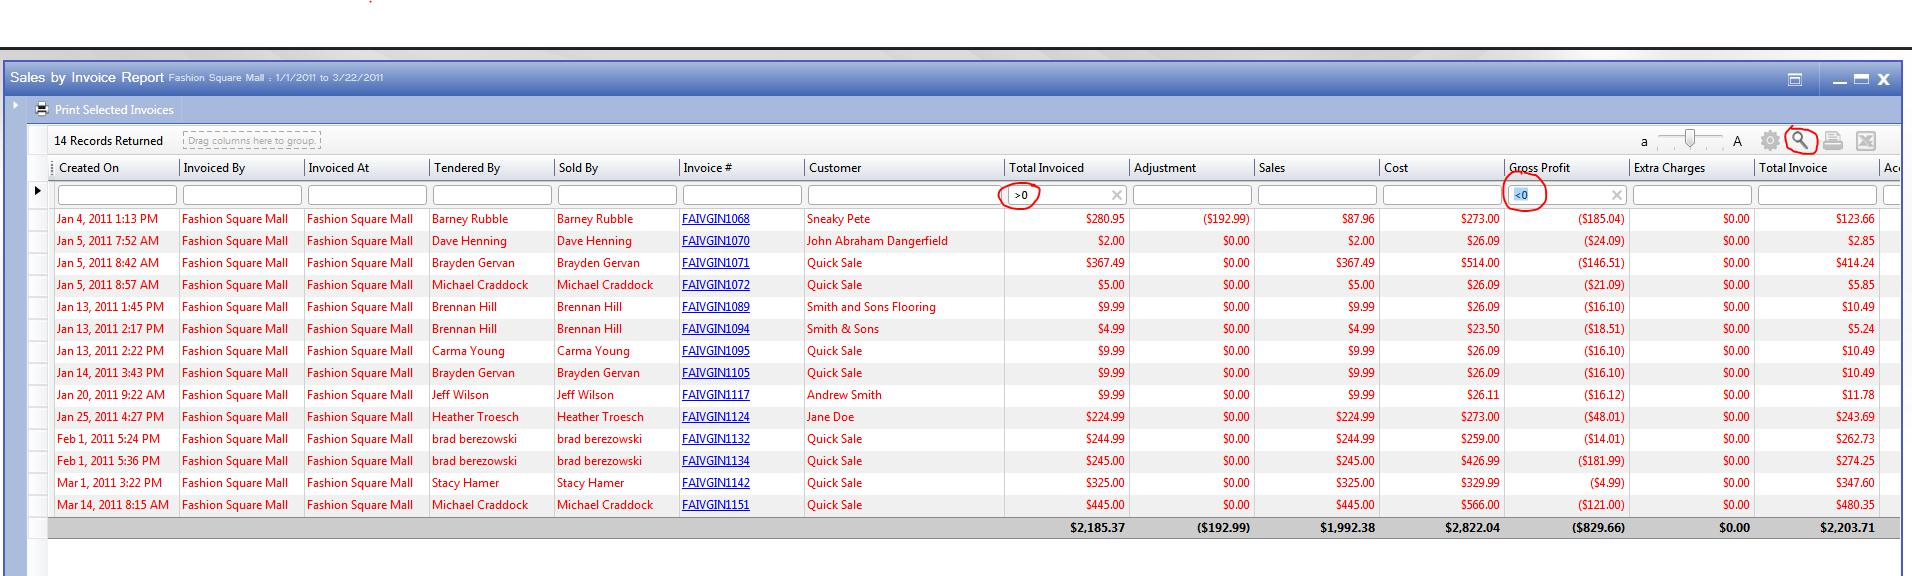 Invoices Made Easy Excel Rq Tips Report Filters Aynax Invoice Excel with Free Auto Repair Invoice Software The Example Below Shows How You Can Make The Sales By Invoice Report  Display Sales That Have A Positive Sales Amount And A Negative Profit  Indicating That  Can I Get A Receipt